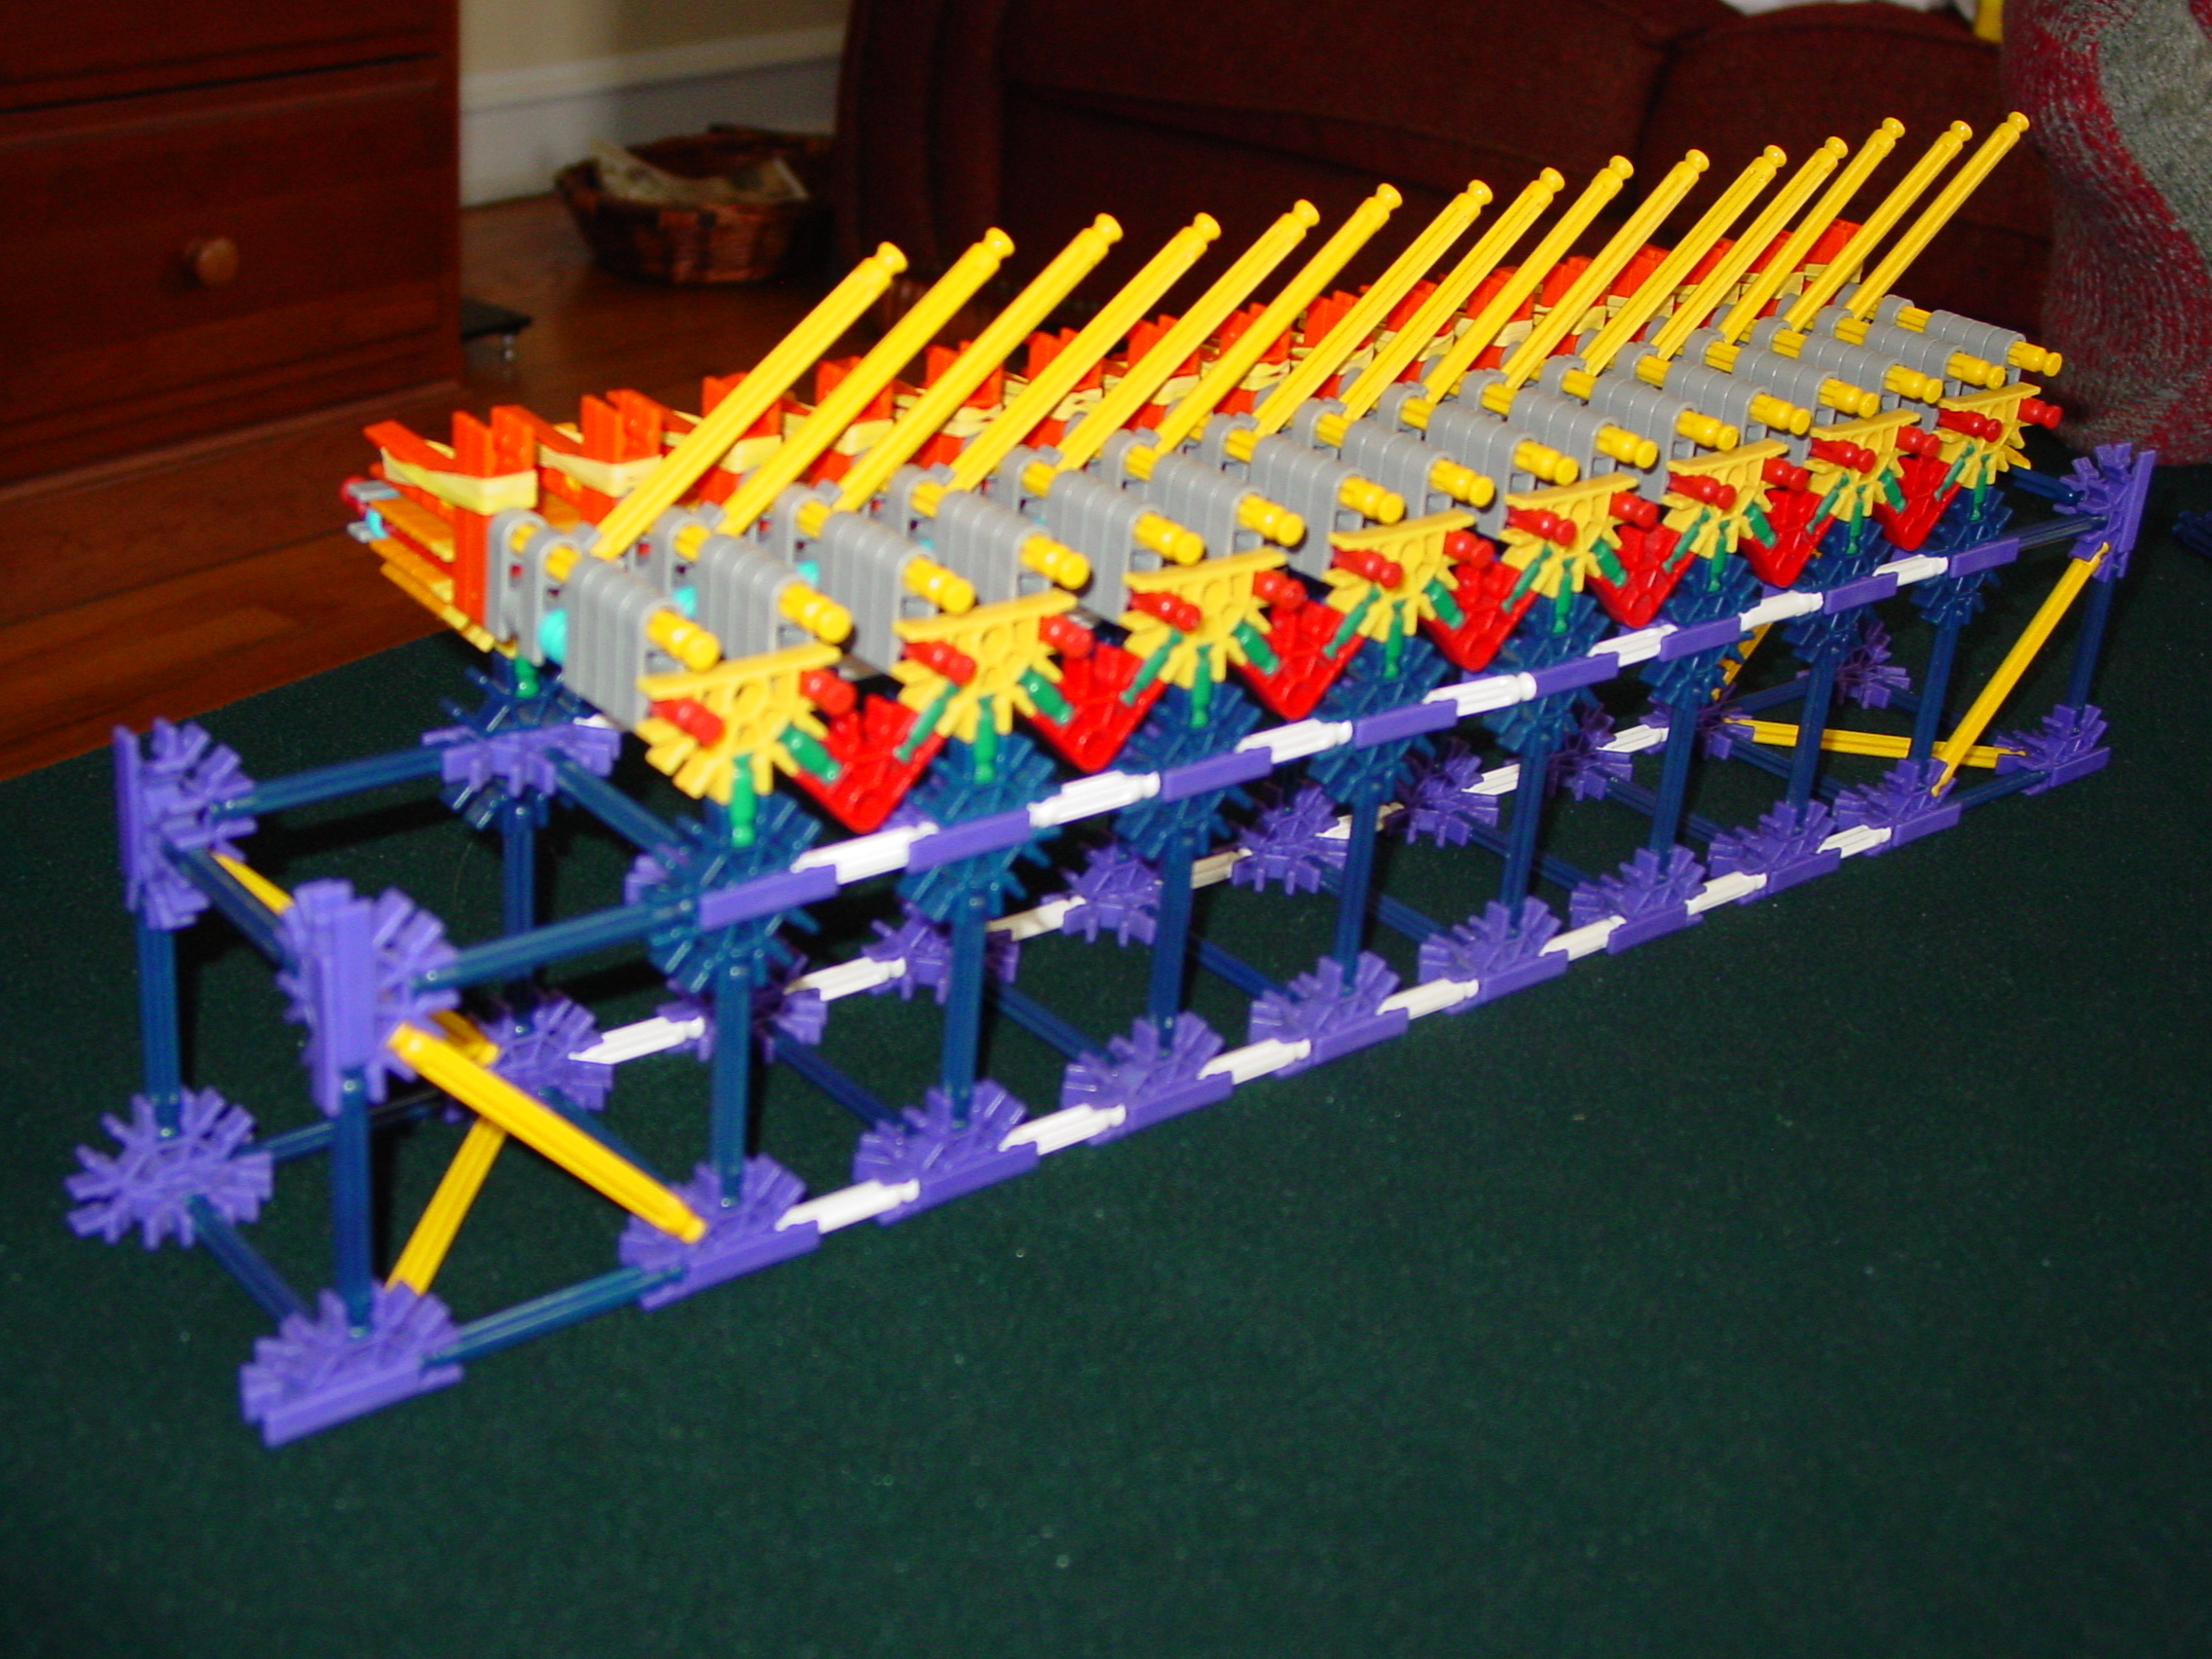 K'nex Rapid Fire Slide Gun